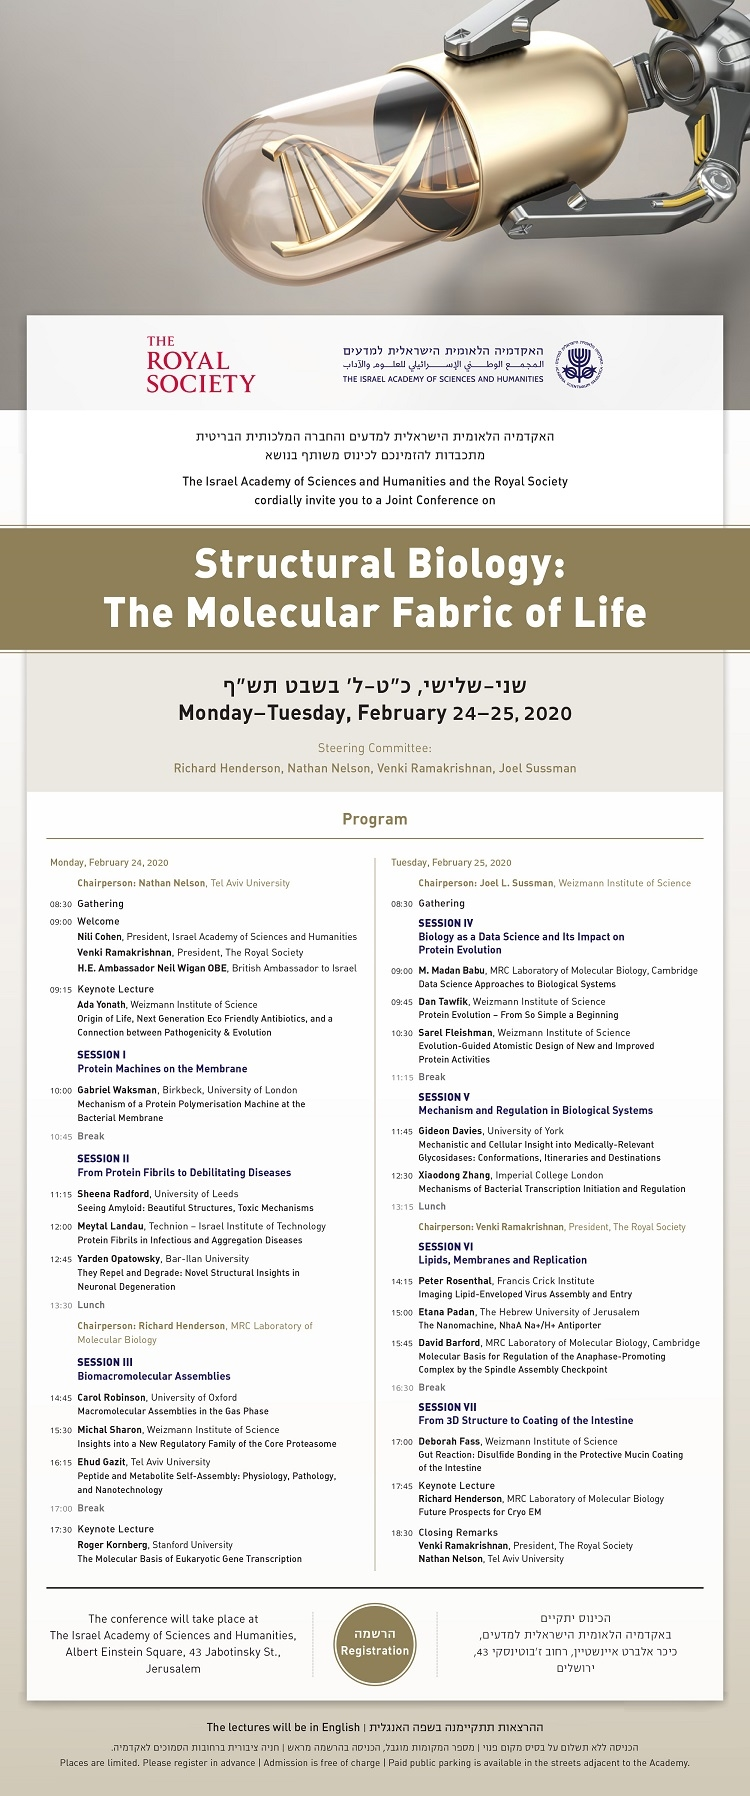 Structural Biology: The Molecular Fabric of Life